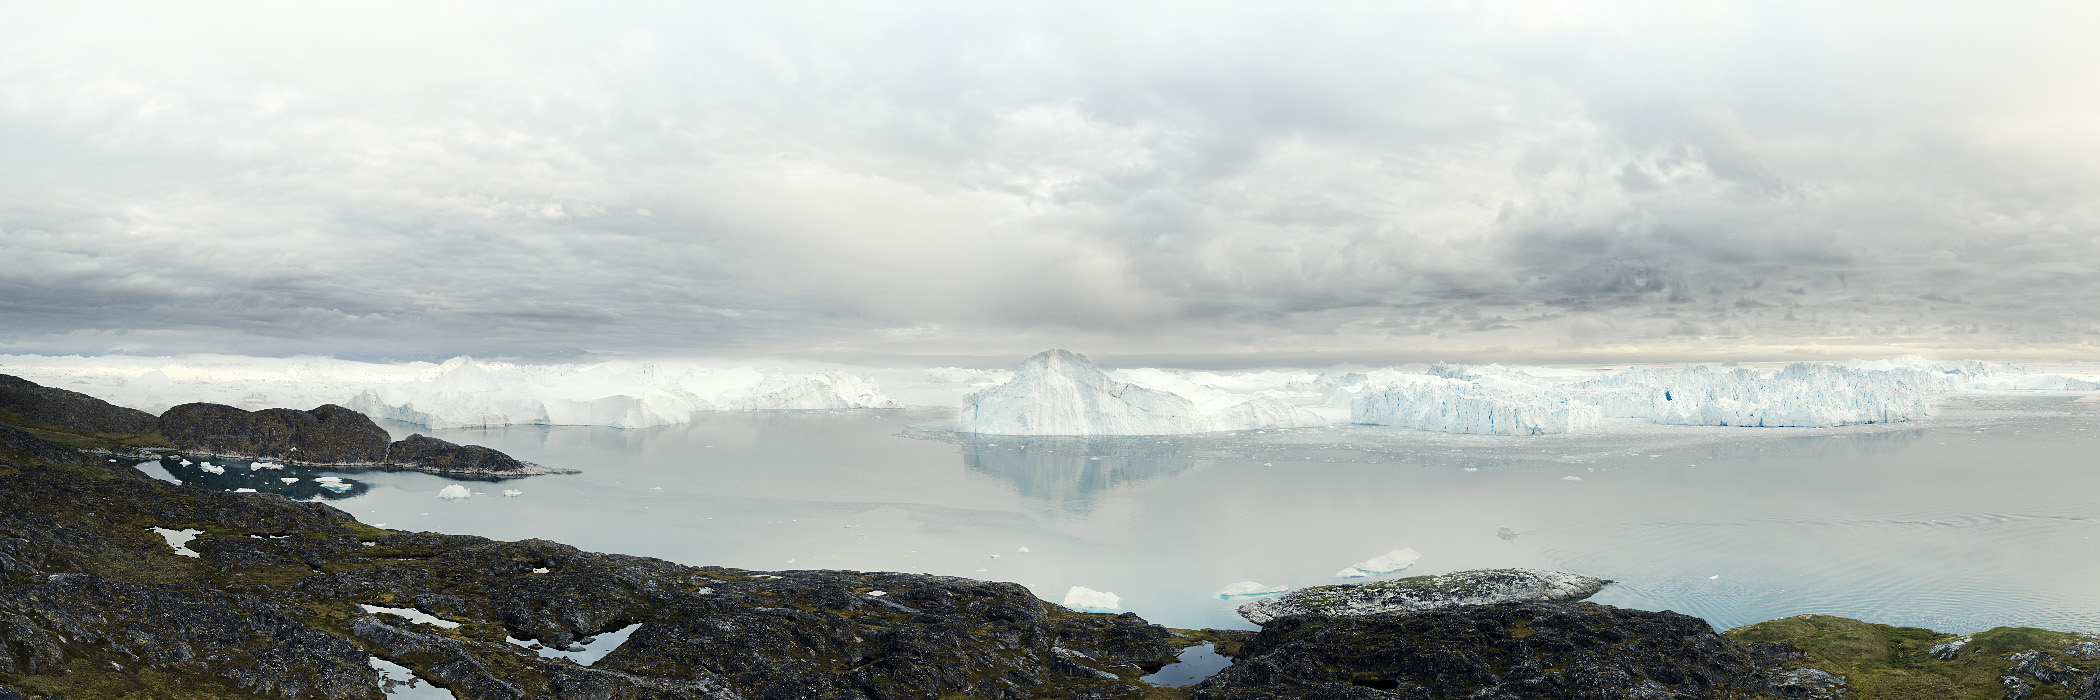 NORTH/SOUTH Ilulissat Icefjord 04, Greenland, 2008